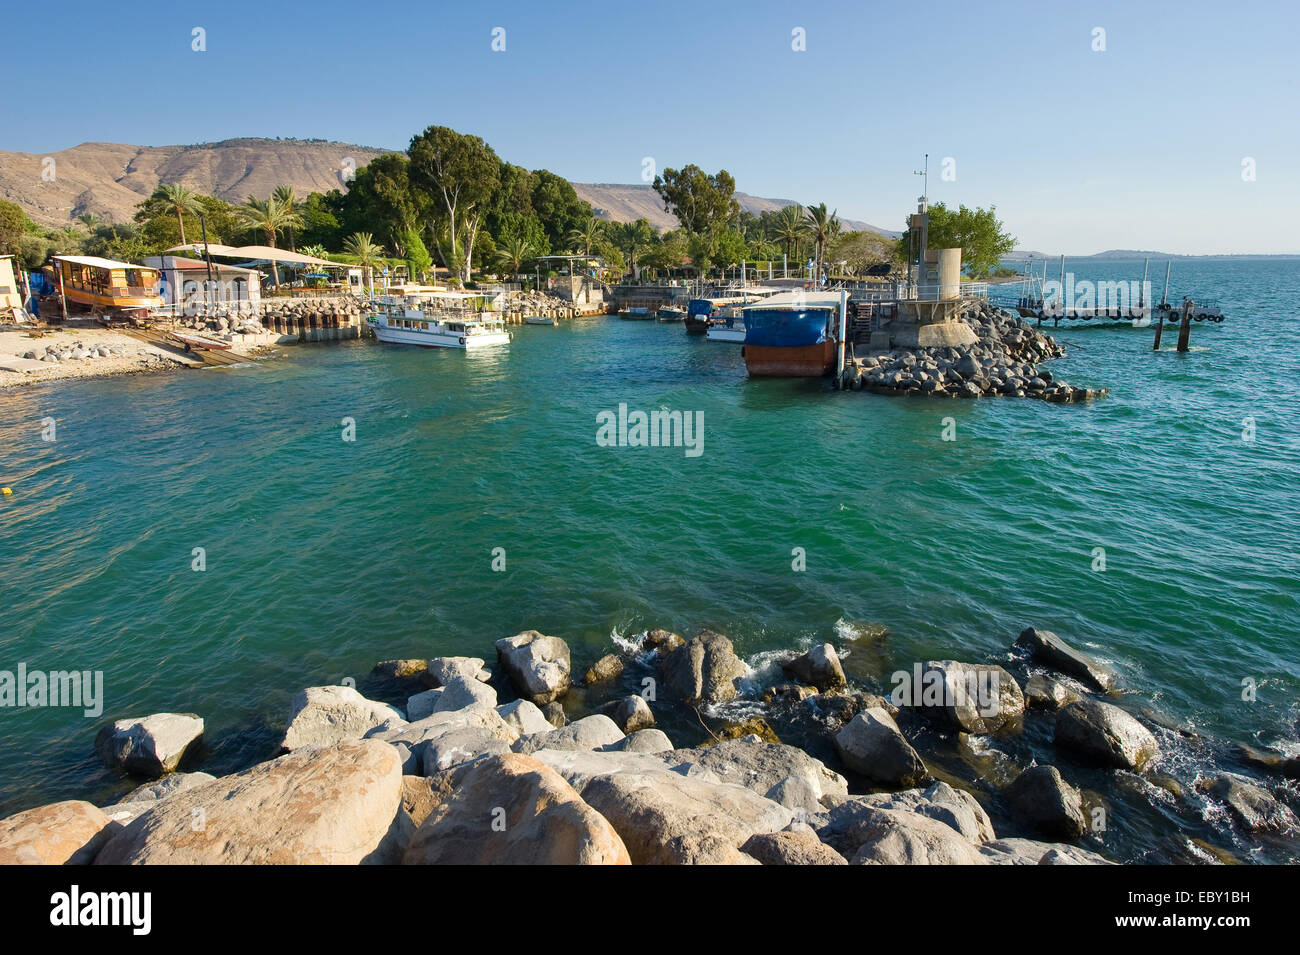 The little harbour of Ein Gev on the east coast of the lake of Galilee in Israel - Stock Image